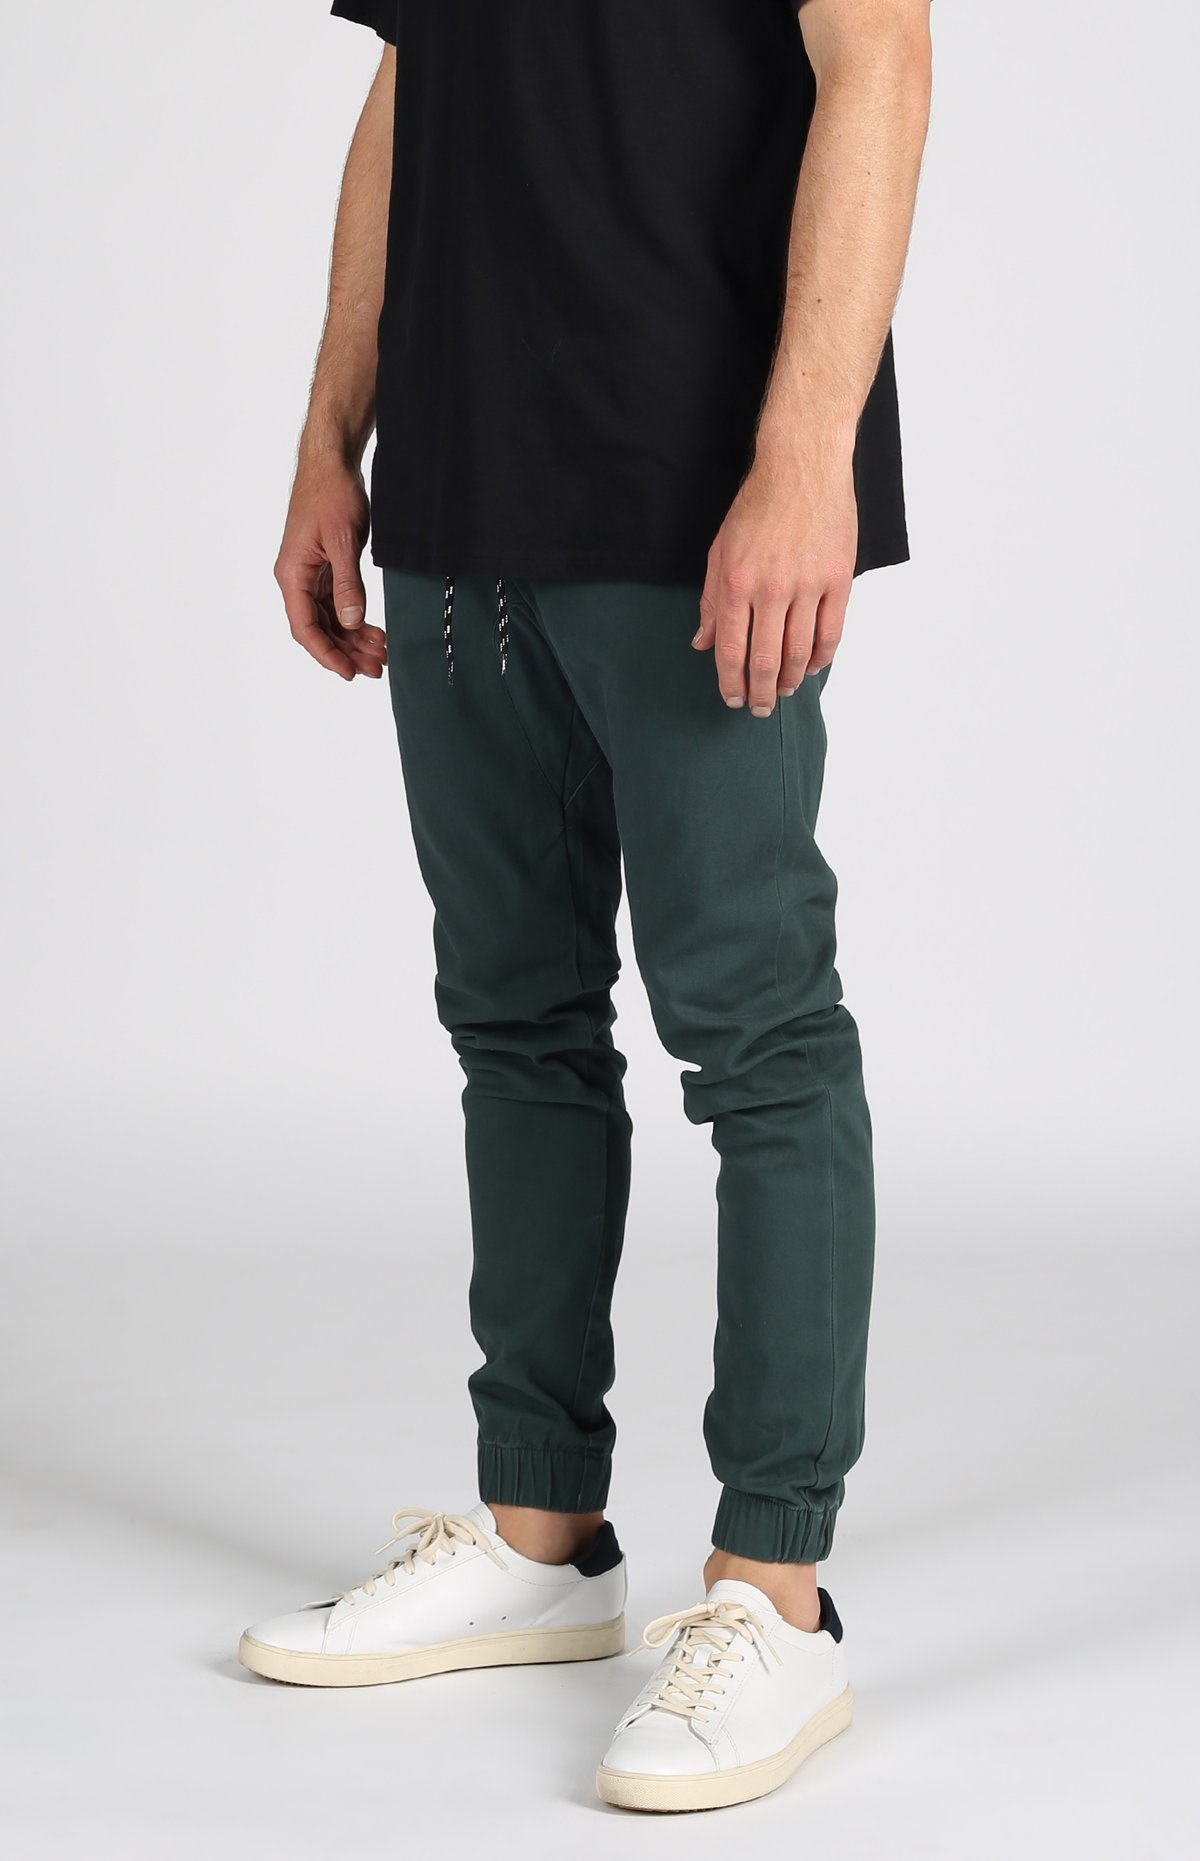 Lira Lira - Weekend Jogger 2.0 - Emerald